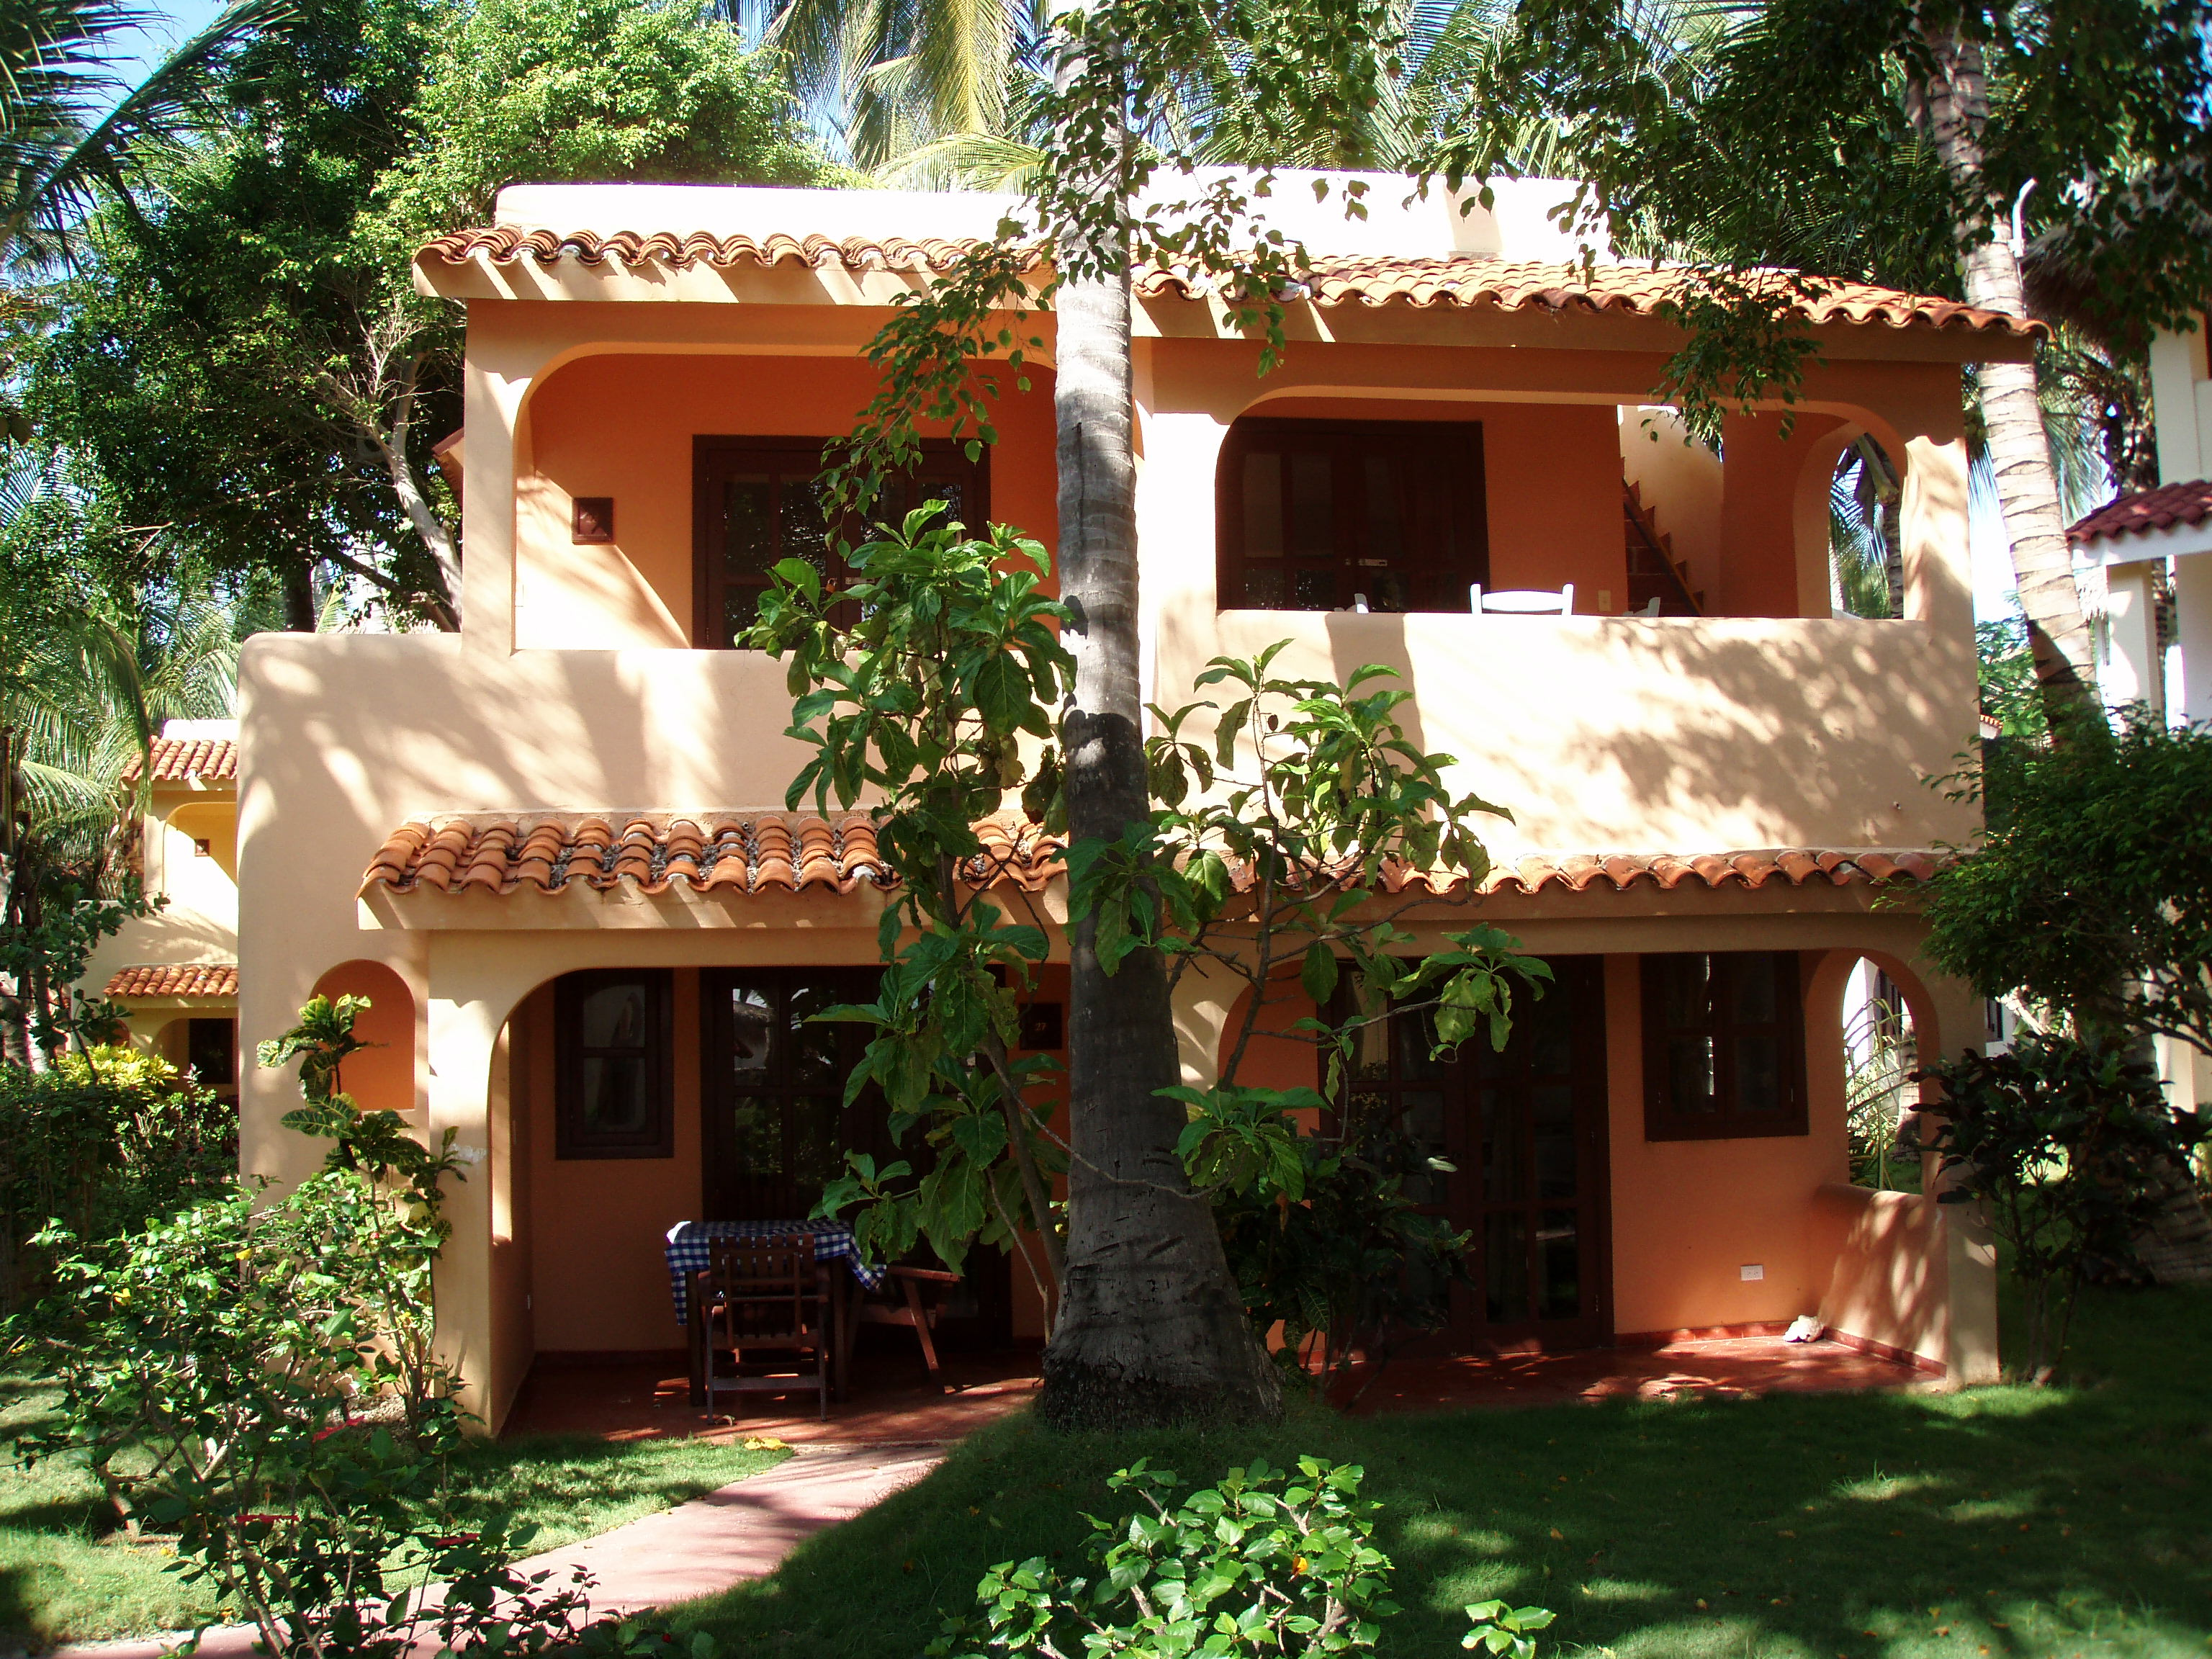 Los Corales Village - Villas 27 & 28 - External view